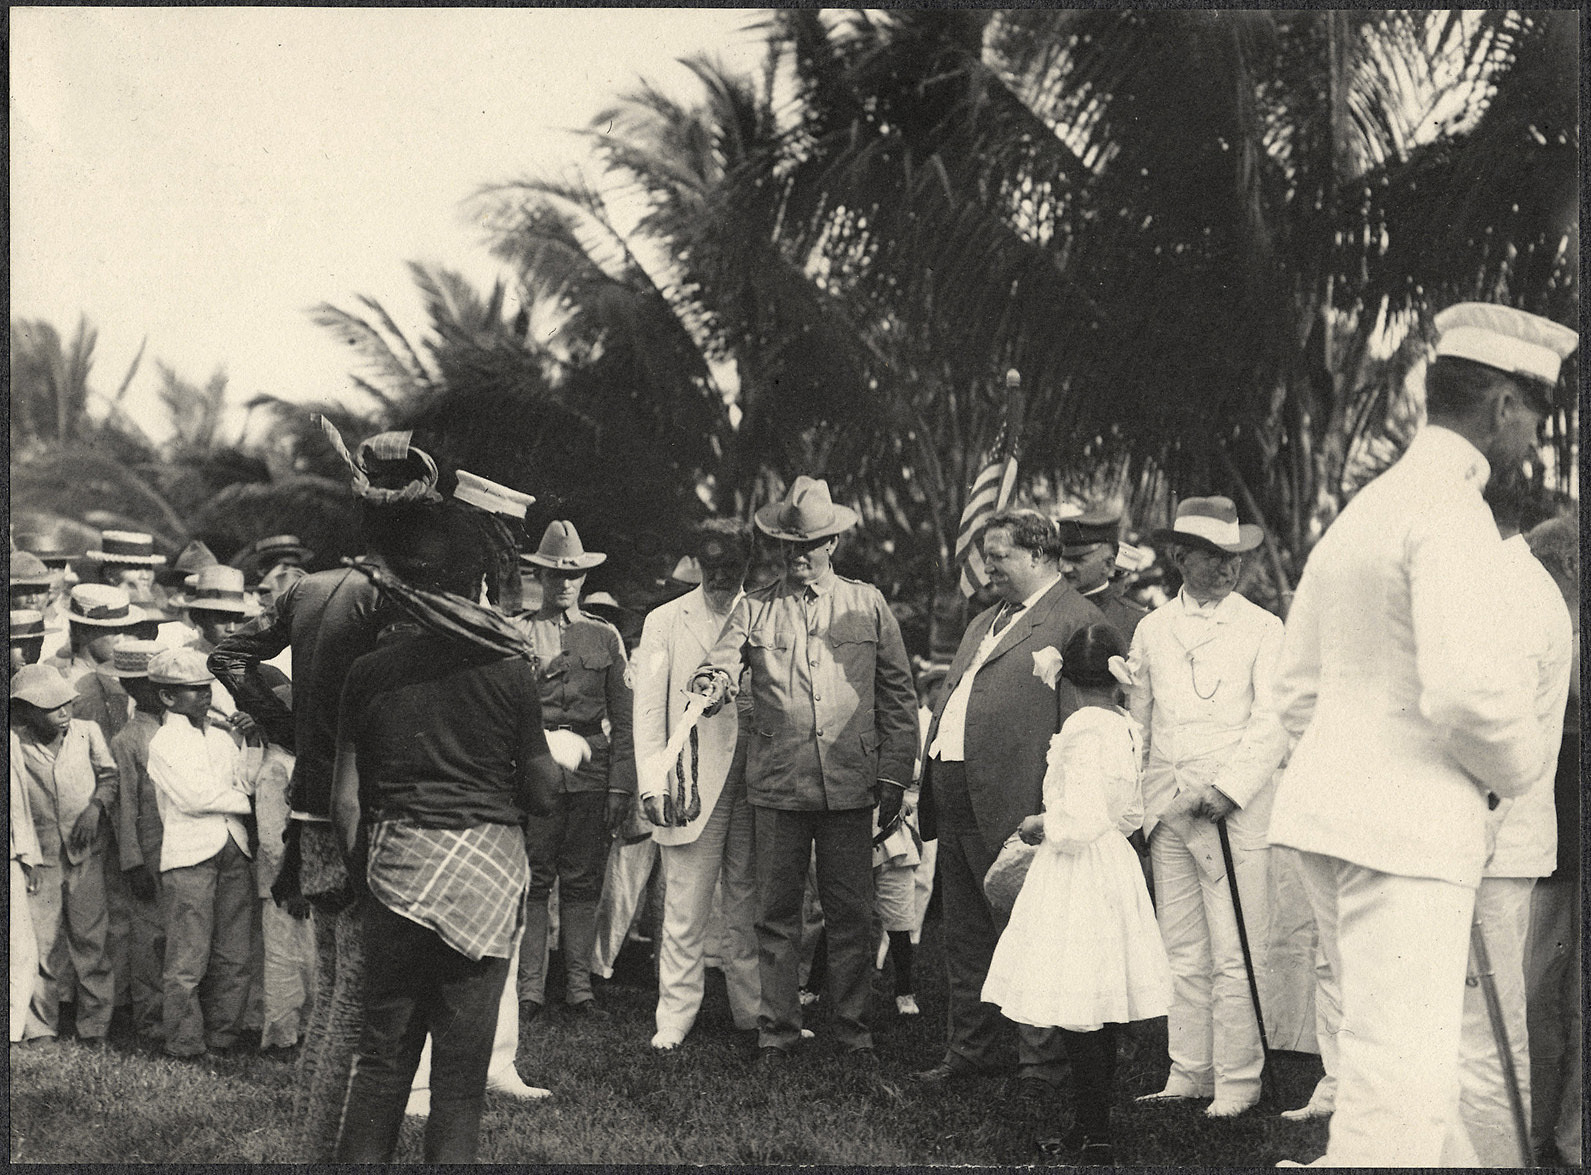 Zamboanga: Wiiliam H. Taft watches as the Datu Piang presents a ceremonial sword to Major John Finley at Zamboanga parade grounds